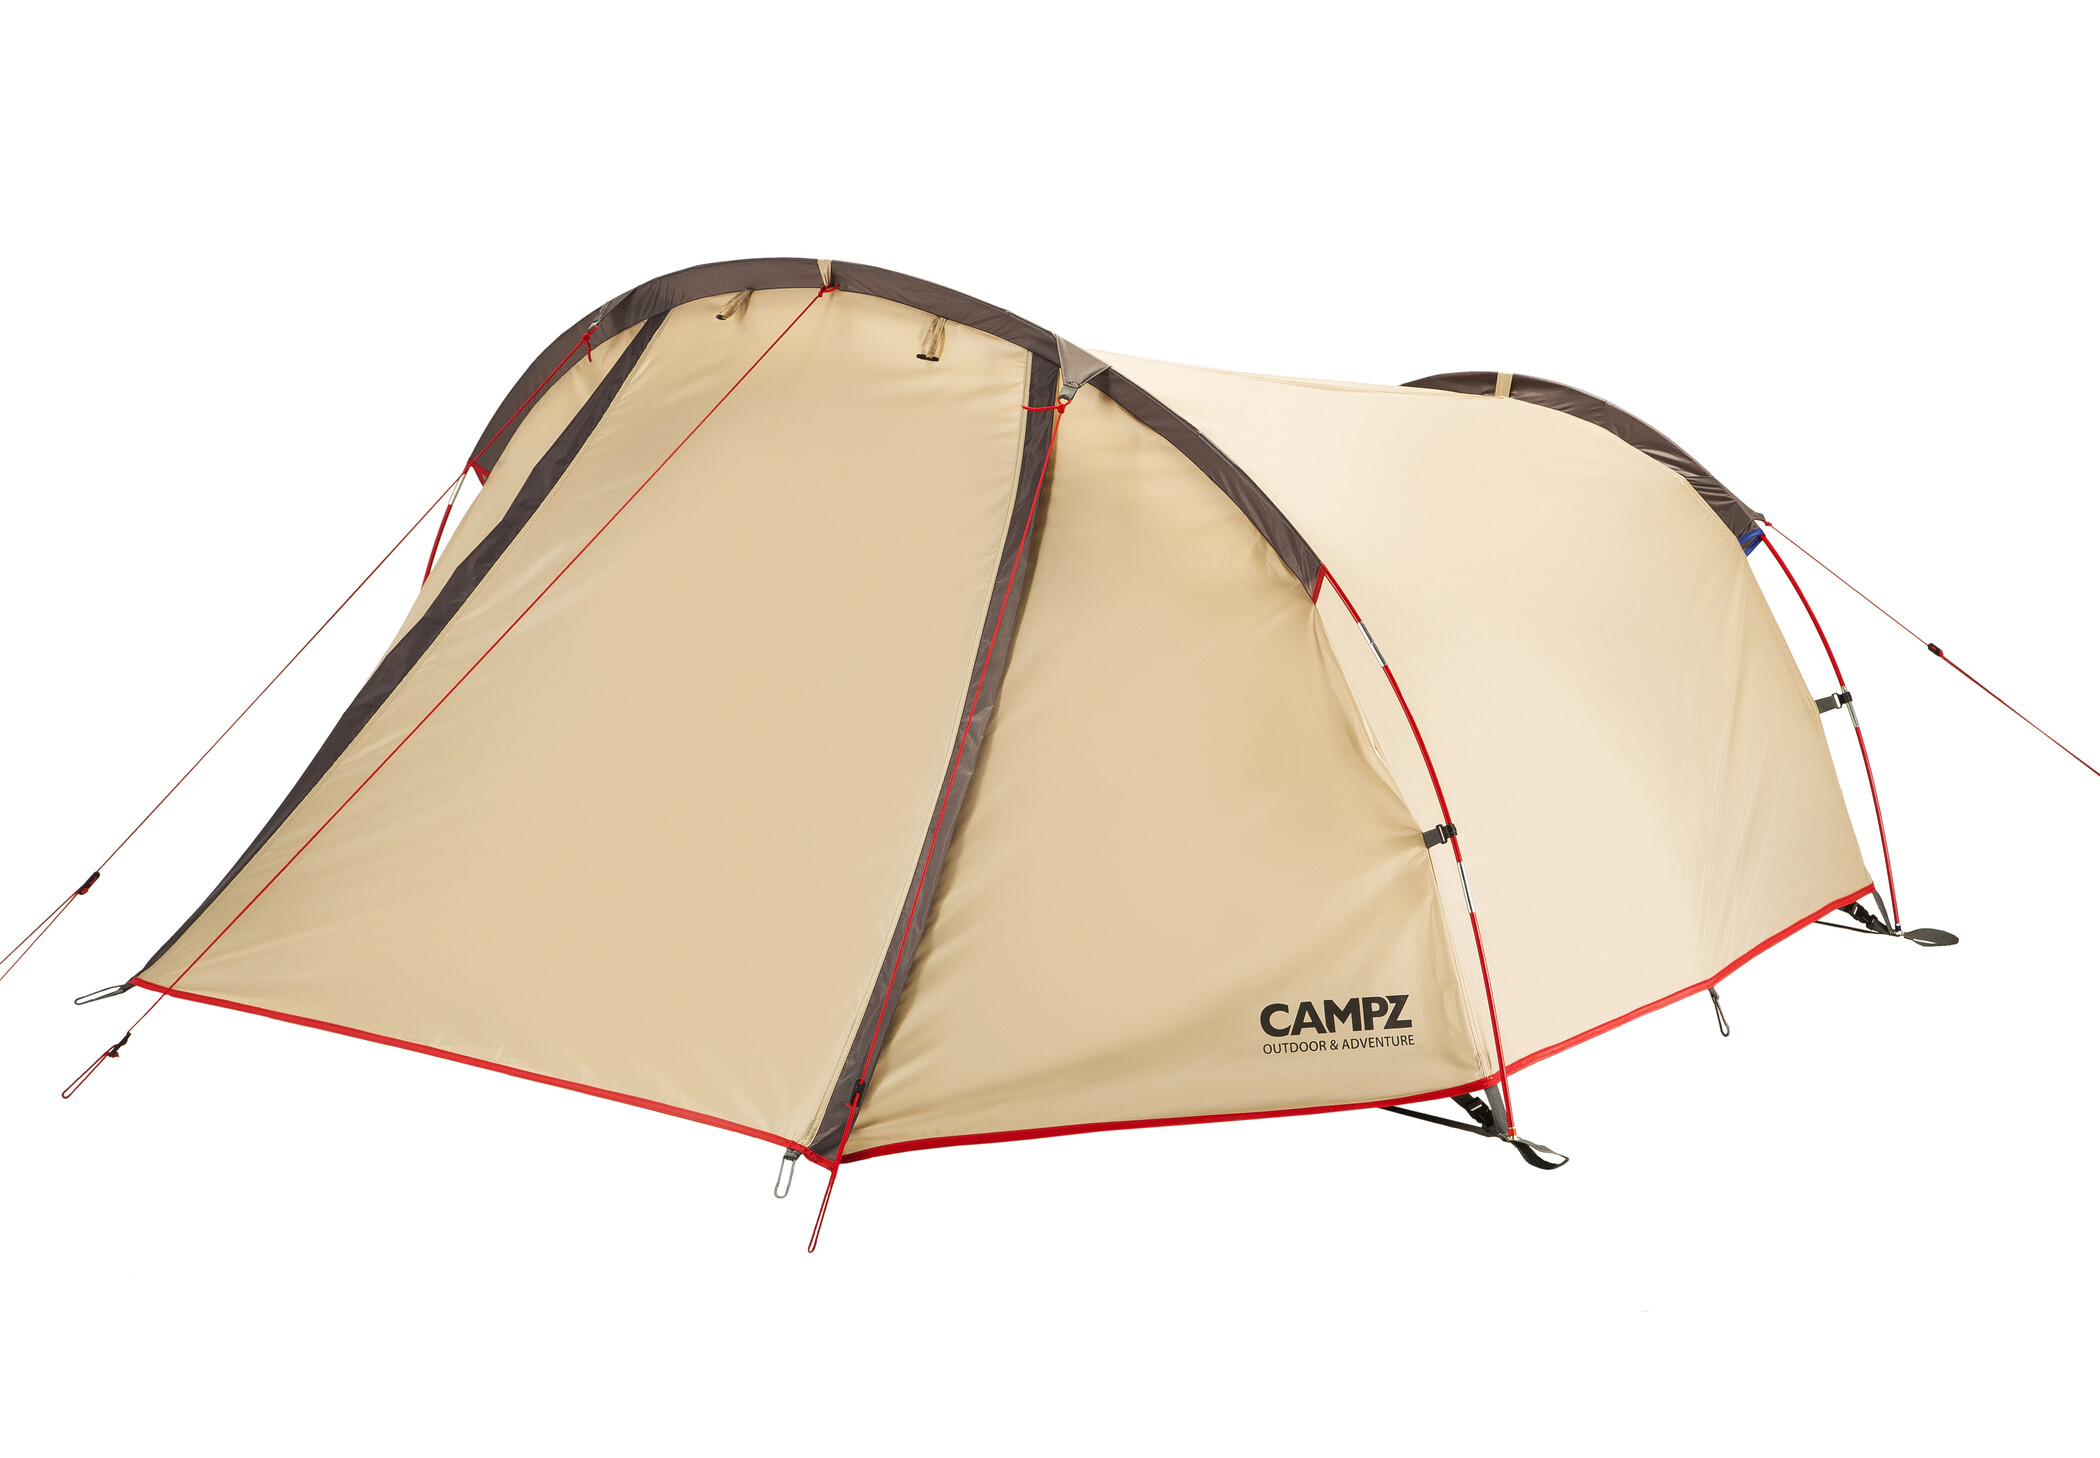 CAMPZ Trentino 2P Telt, beige (2019) | Misc. Transportation and Storage